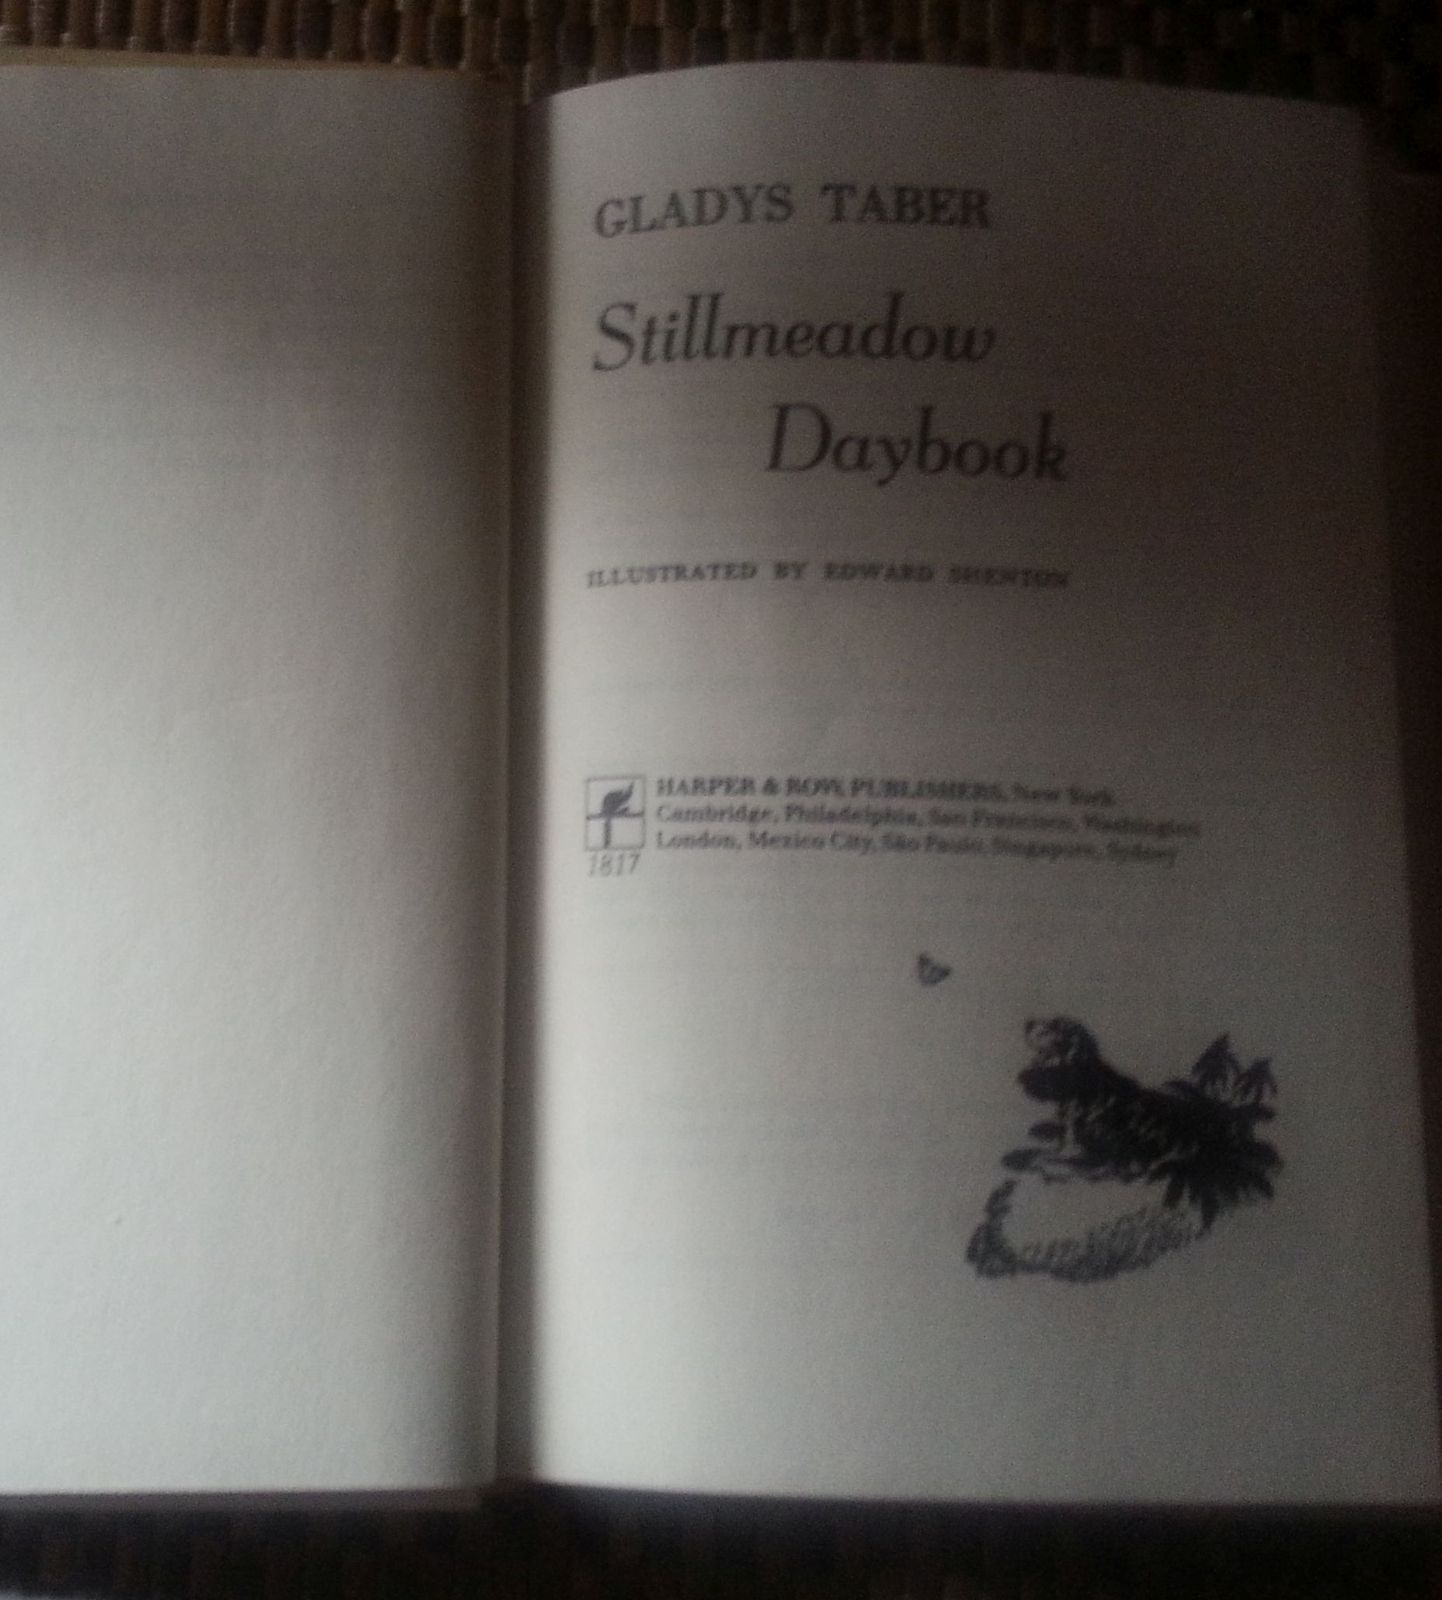 Stillmeadow Daybook by Gladys Taber 1983 HBDJ Home in Connecticut